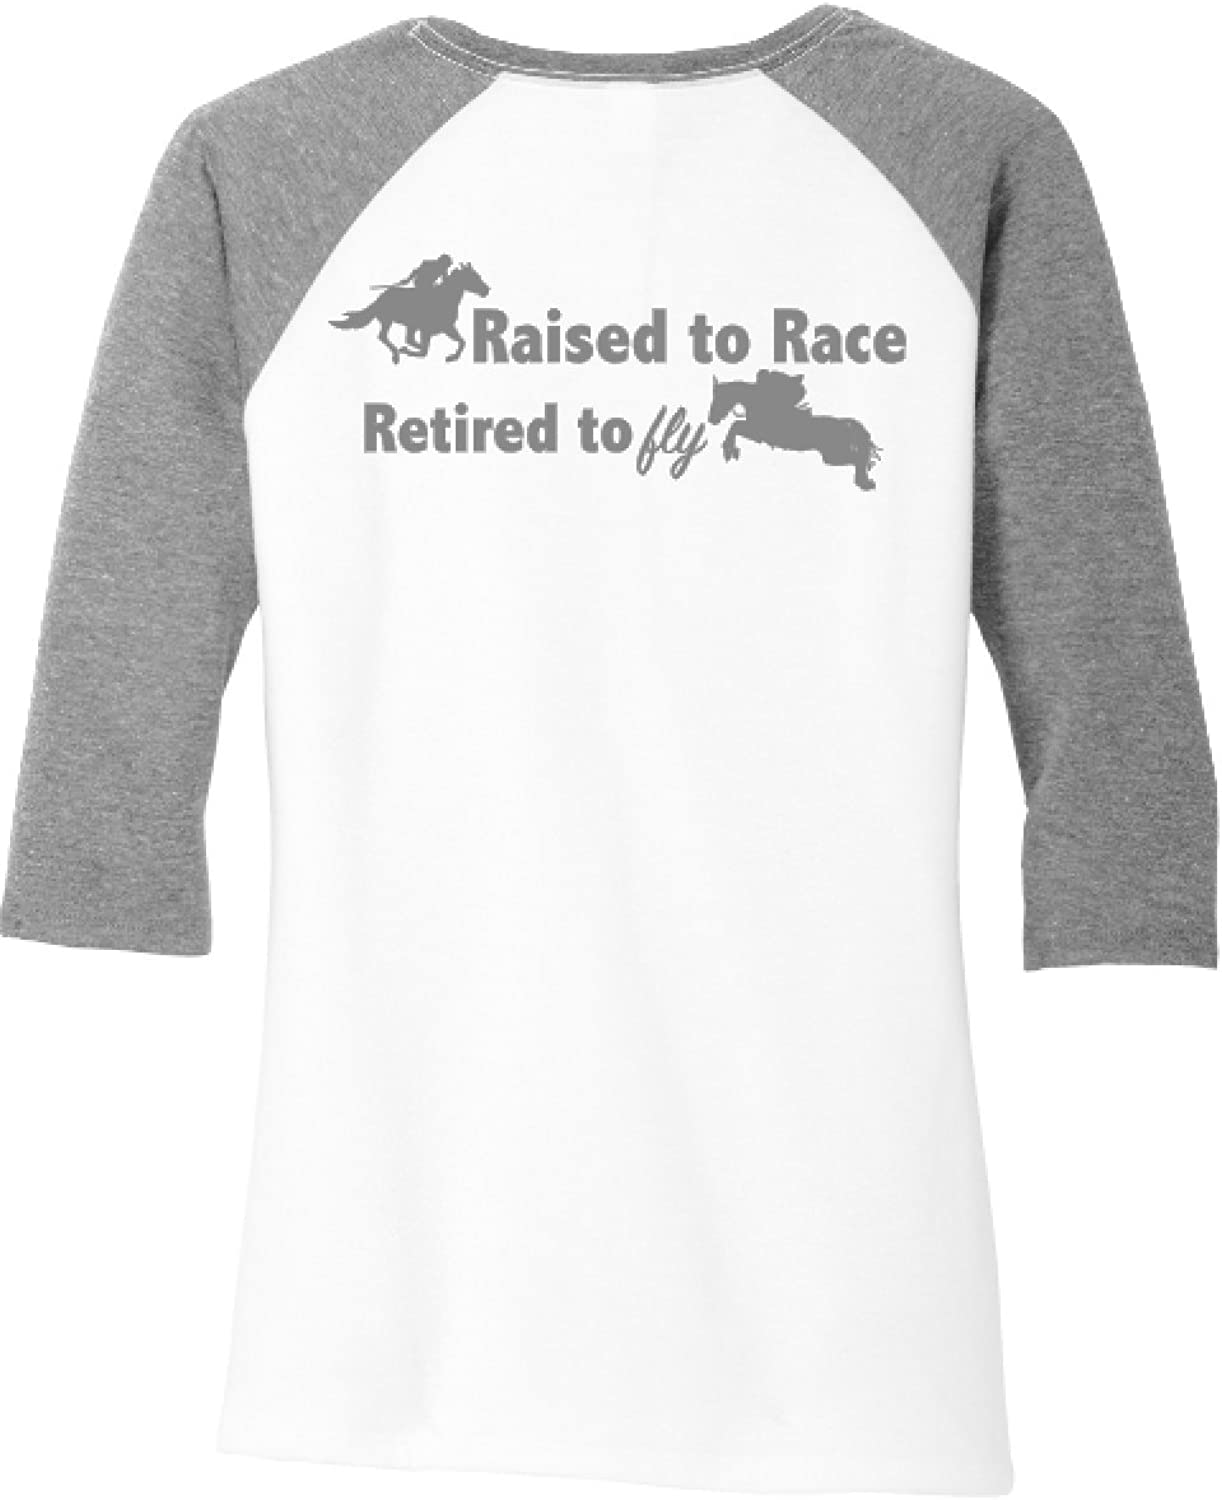 Ingenie.us Raised to Race, Retired to Fly OTTB Raglan Shirt Equine Clothes Rescue